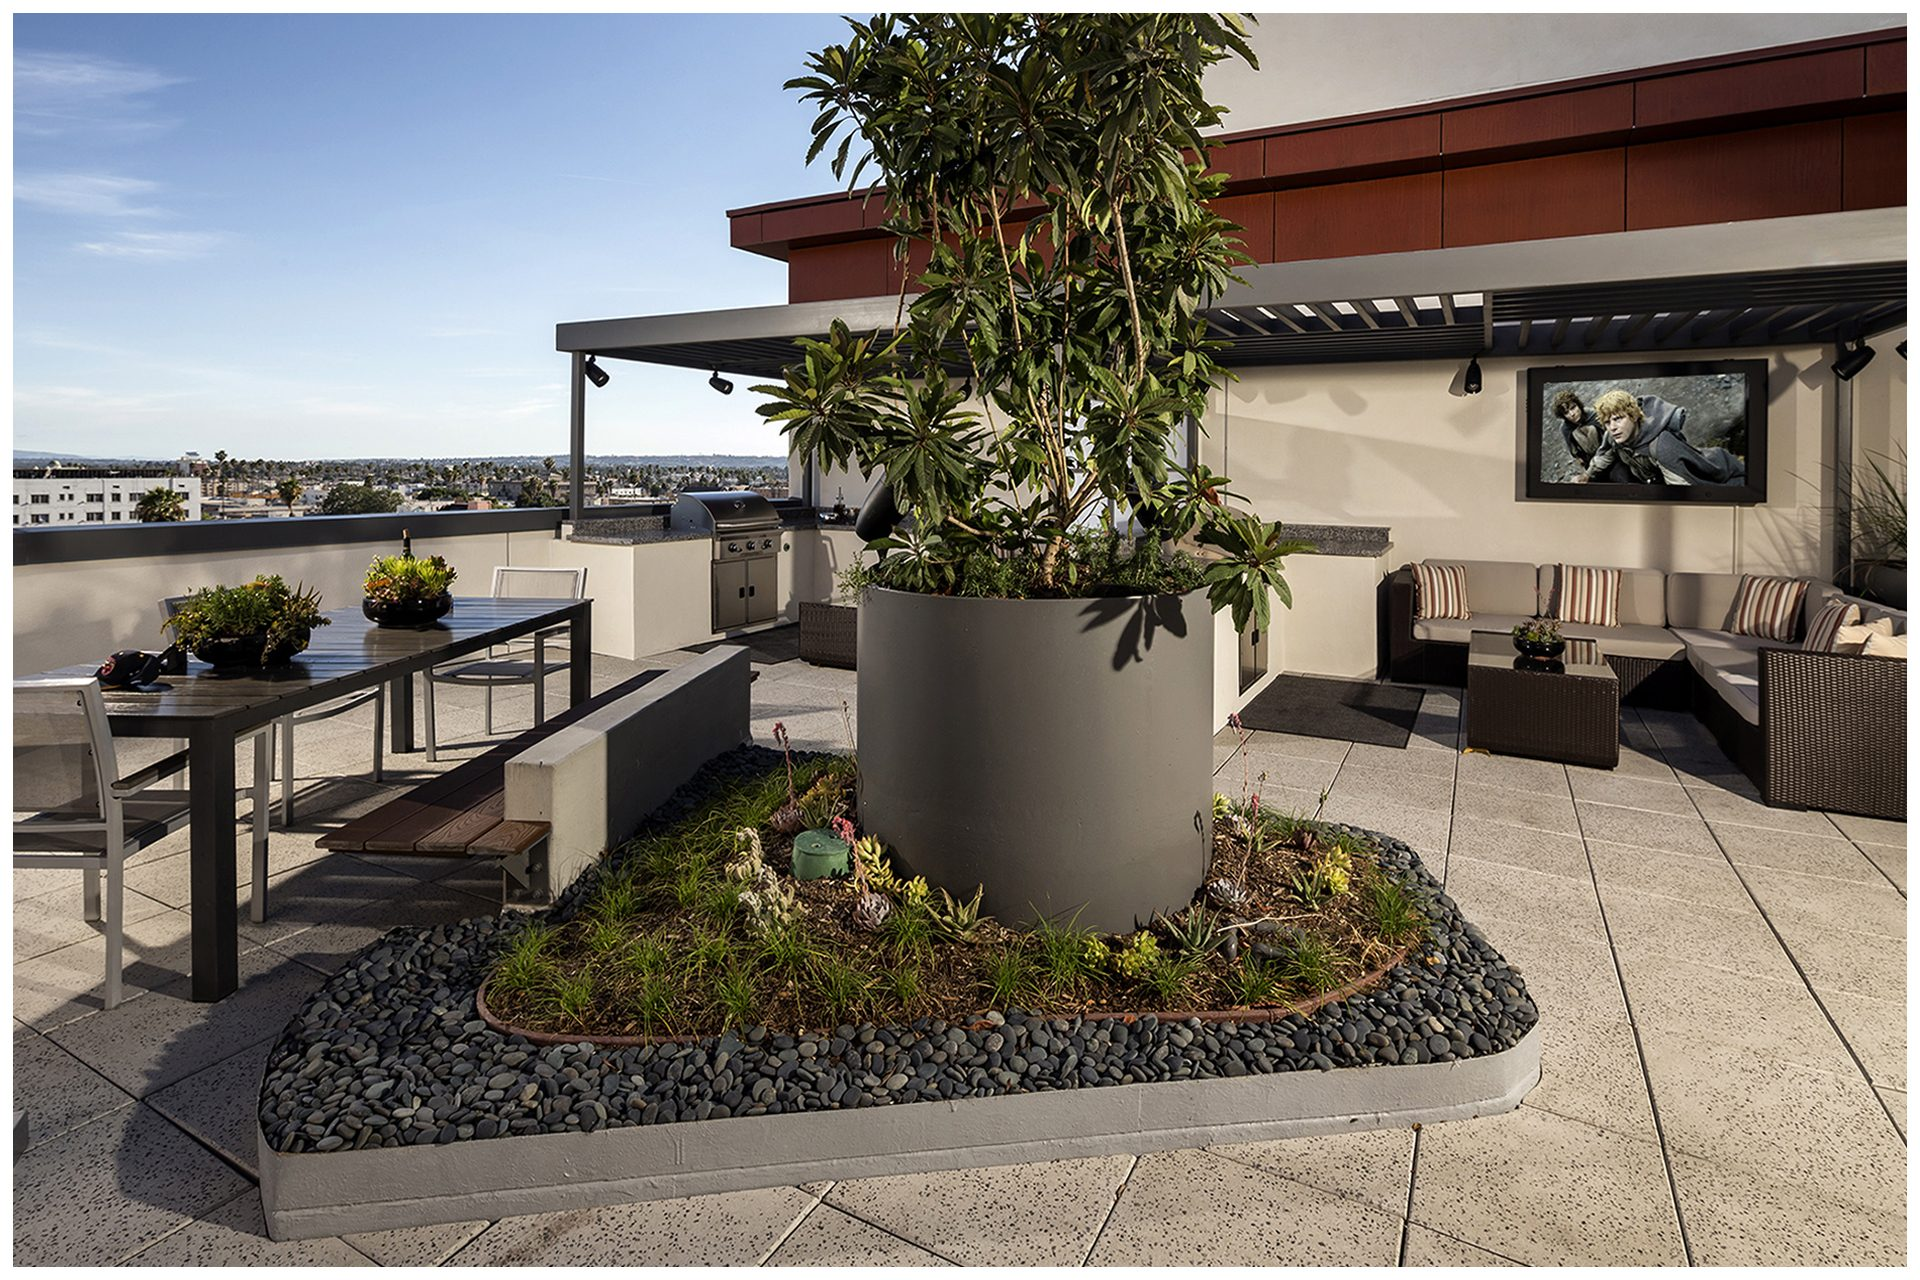 ROOFTOP/SKY DECK PROVISIONS Roof-top Audio Video & Enterprise WiFi; Audio & TV provisions controlled remotely from leasing office.